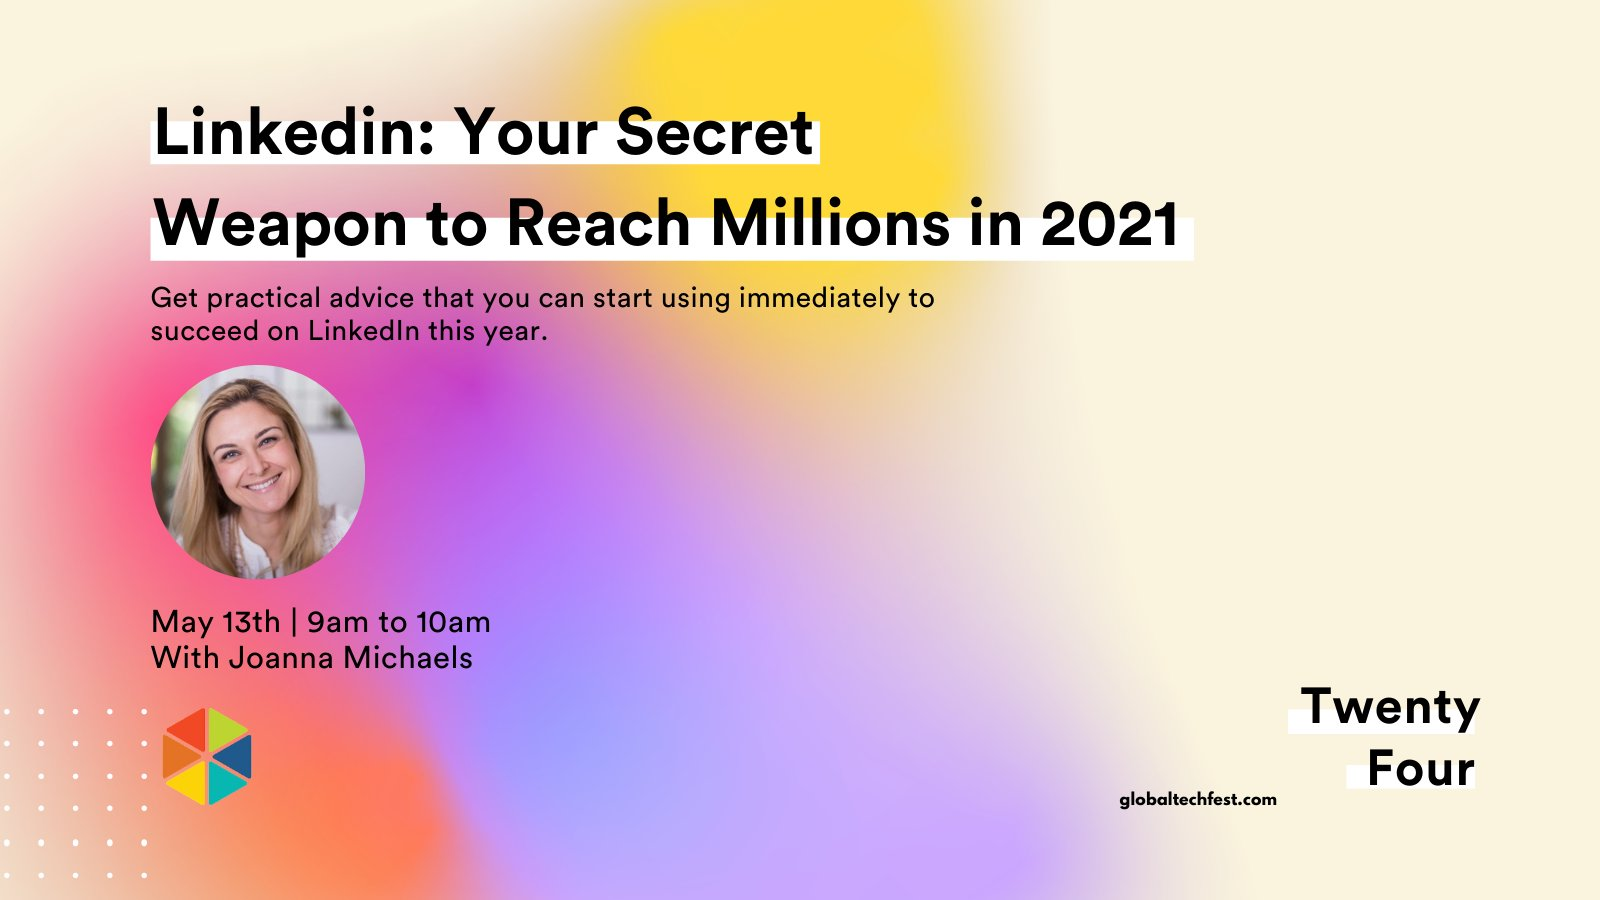 LinkedIn: Your secret weapon to reach millions in 2021